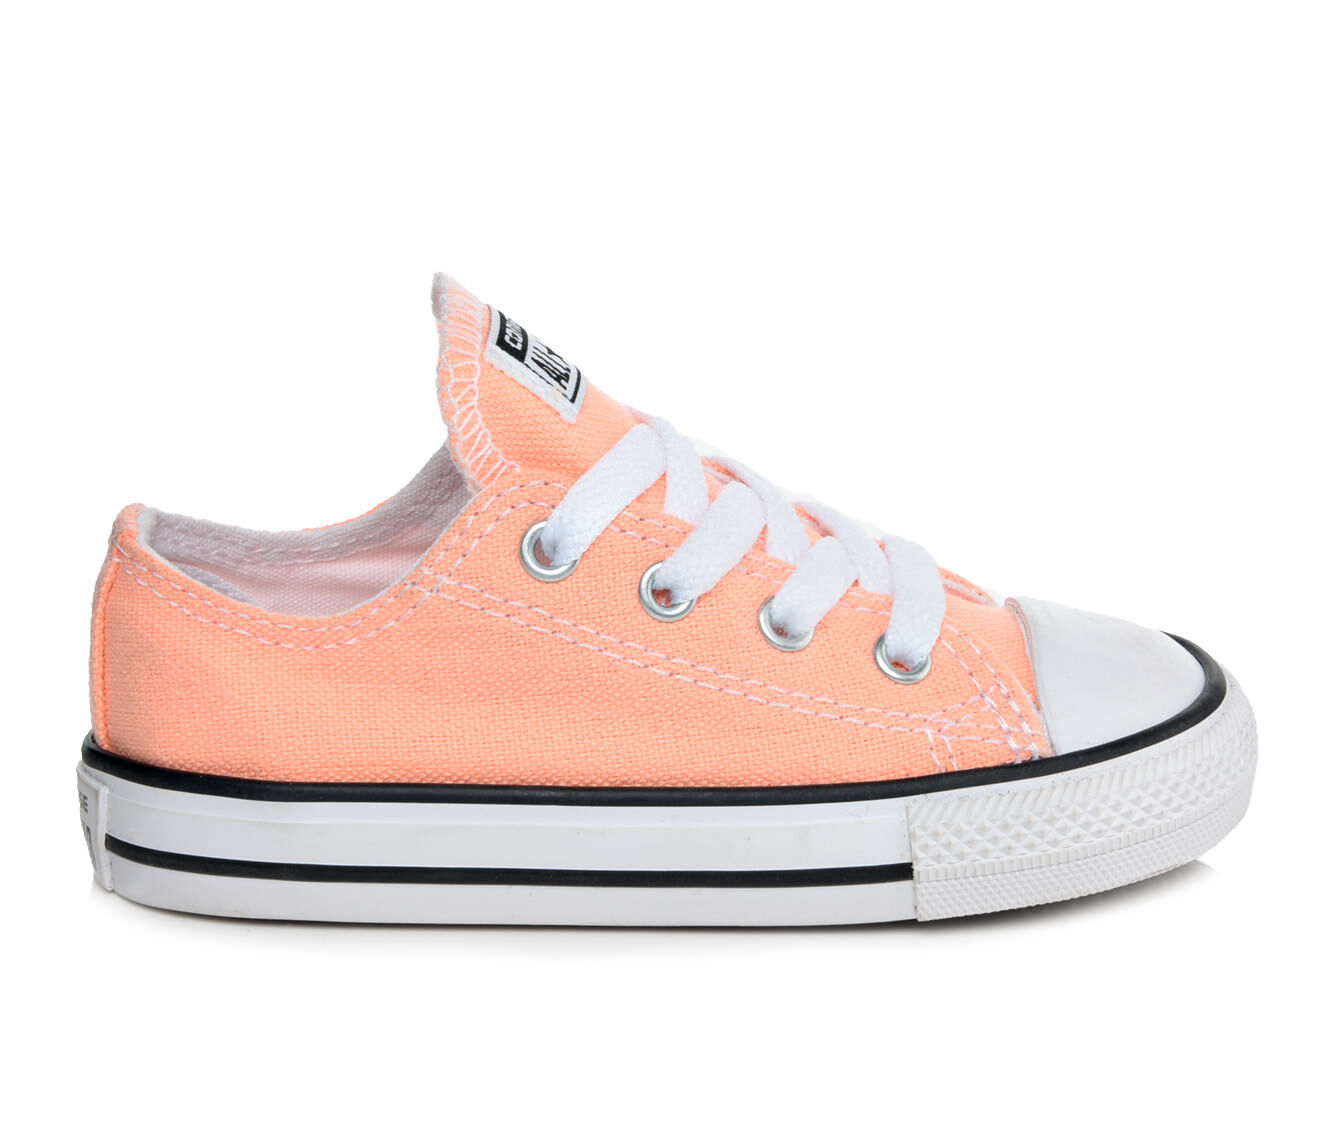 628a3df8f2a ... inexpensive kids converse chuck taylor all star infant ox sneakers  c6416 36f75